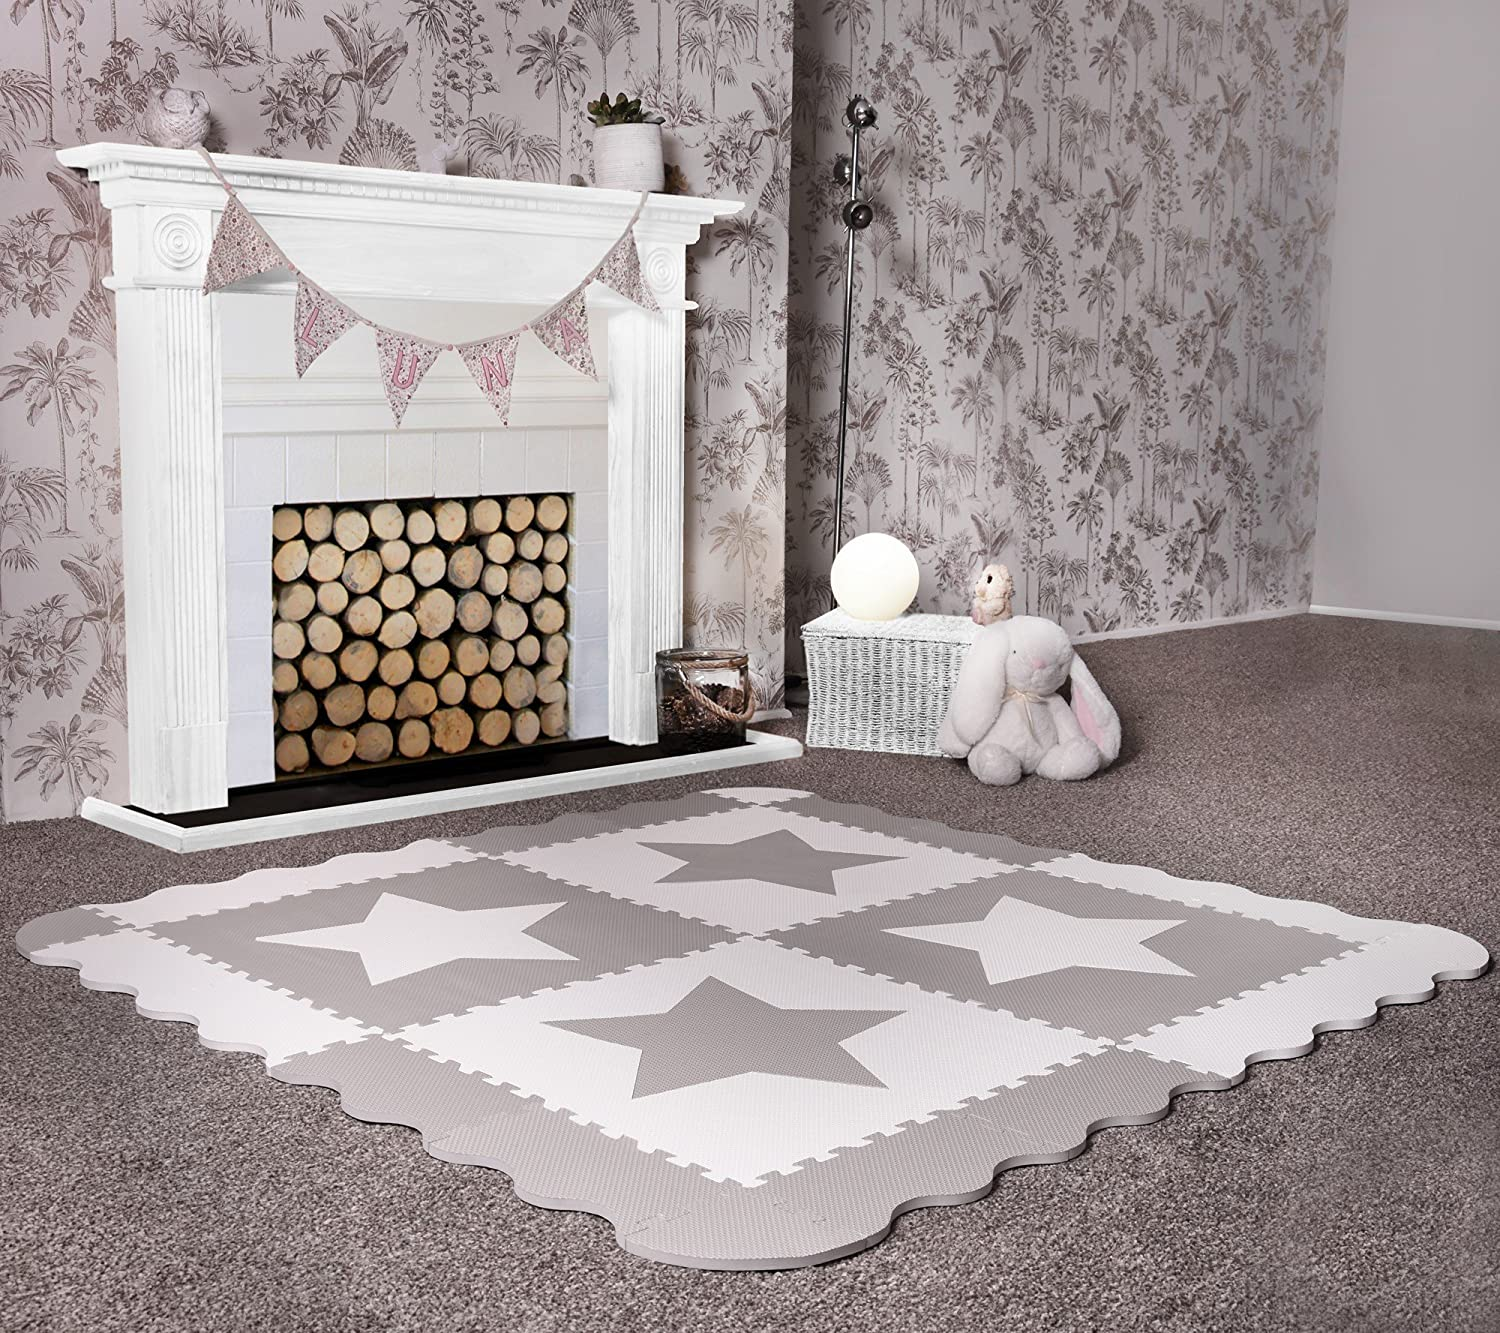 4 Large Grey Interlocking Foam Baby Play Mat Star Tiles - Play Mats with Edges. Each tile 60 x 60cms. Total 1.2m2. For the Love of Leisure